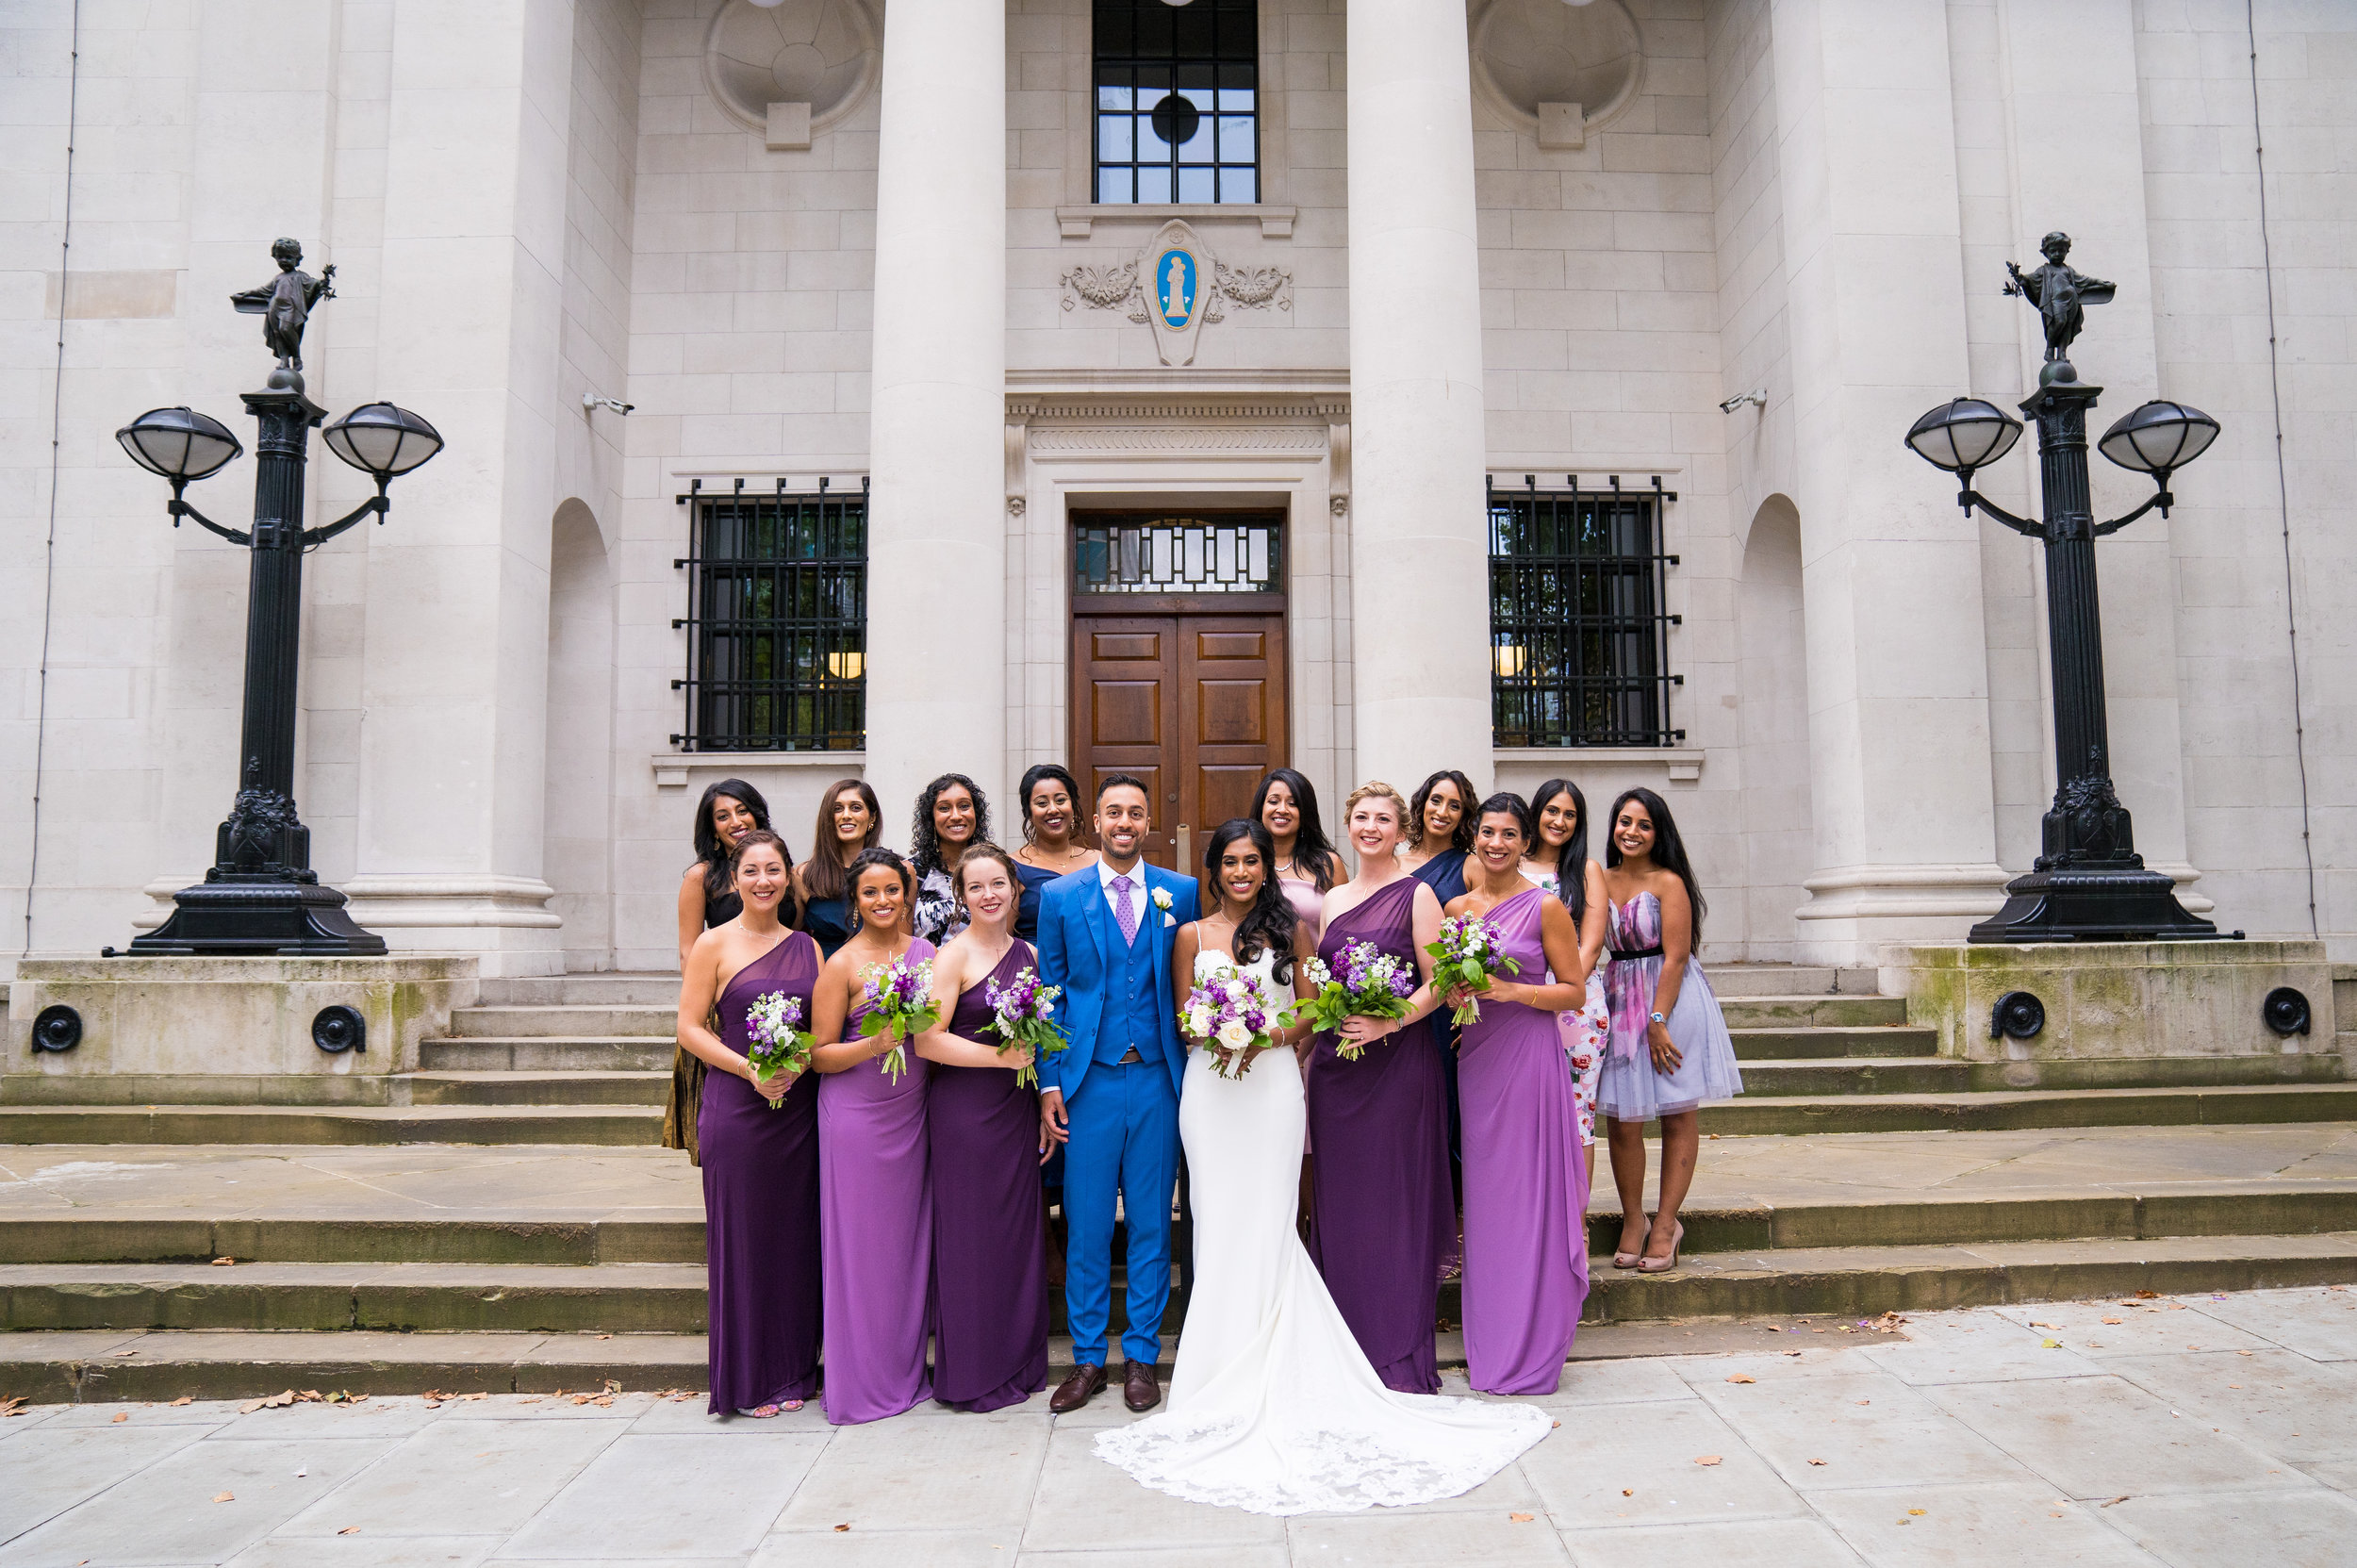 anglo-asian-hindu-civil-wedding-photography-videography-london-portrait-marylebone-old-town-hall-47